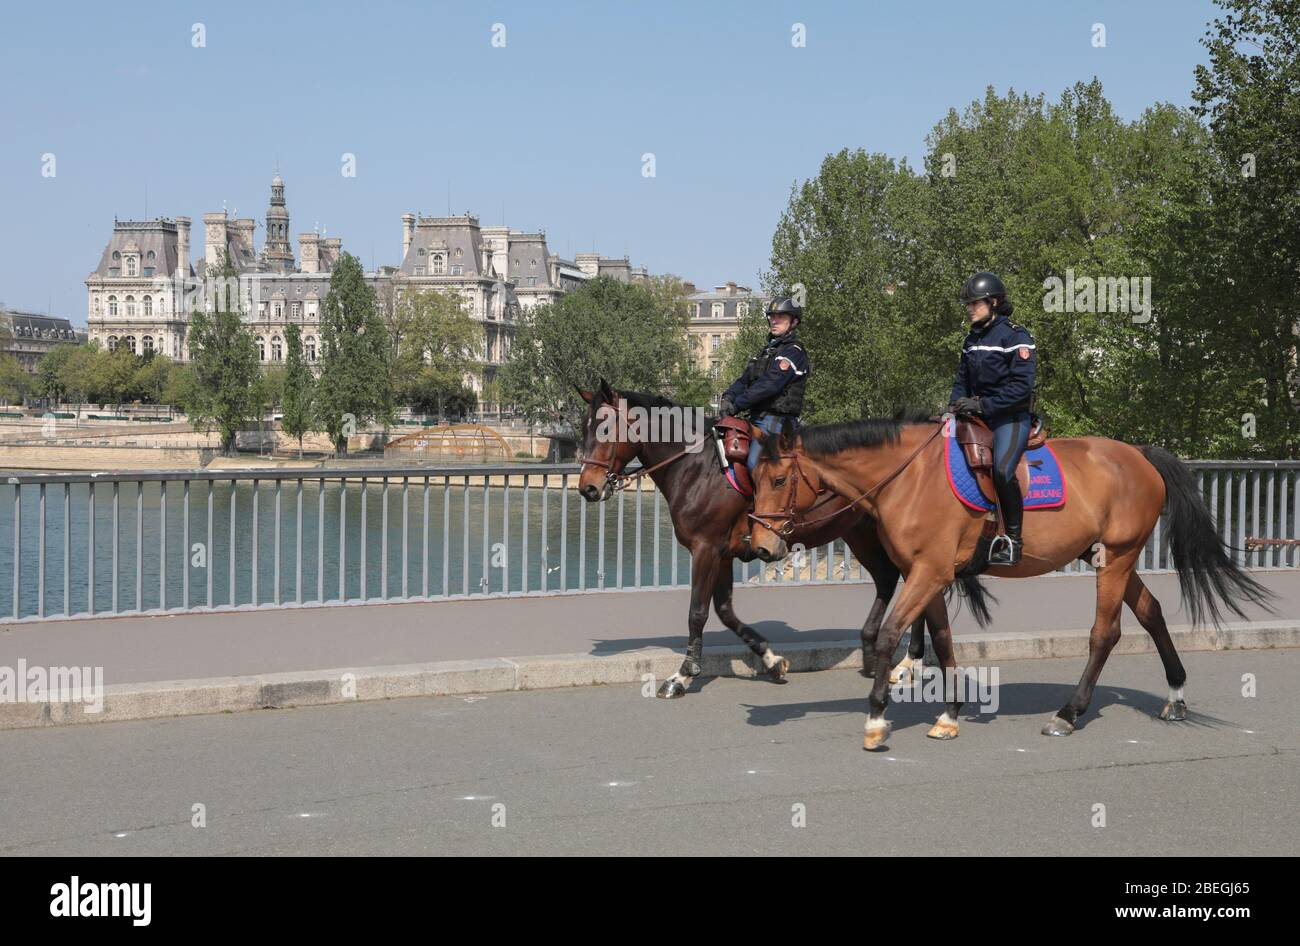 MOUNTED POLICE IN PARIS Stock Photo